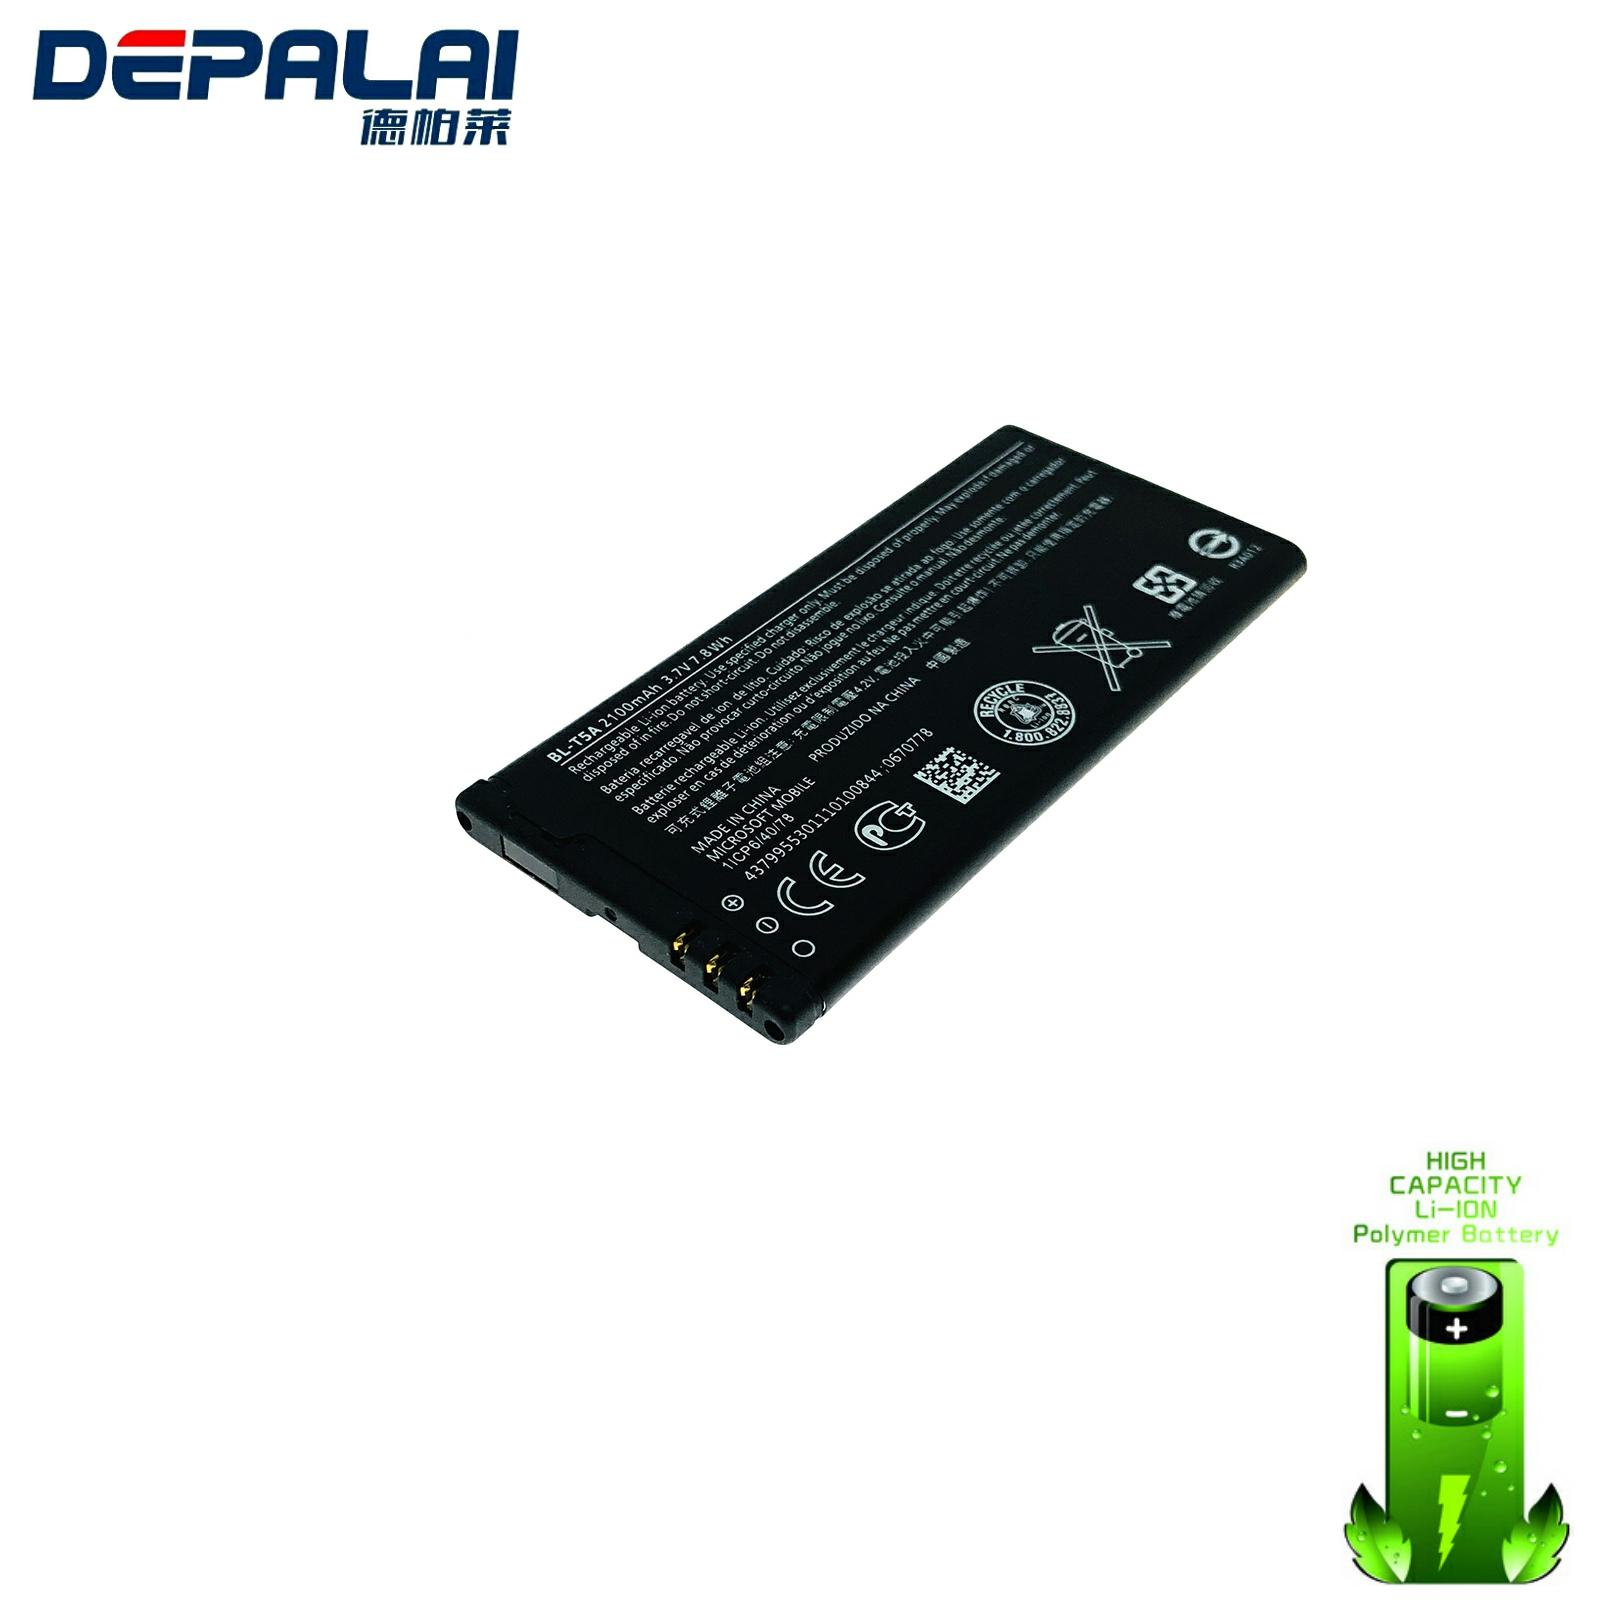 2220mAh BV-T5A Replacement Battery For <font><b>Nokia</b></font> Lumia 730 735 738 Superman RM1038 RM1040 RM 1038 RM <font><b>1040</b></font> image